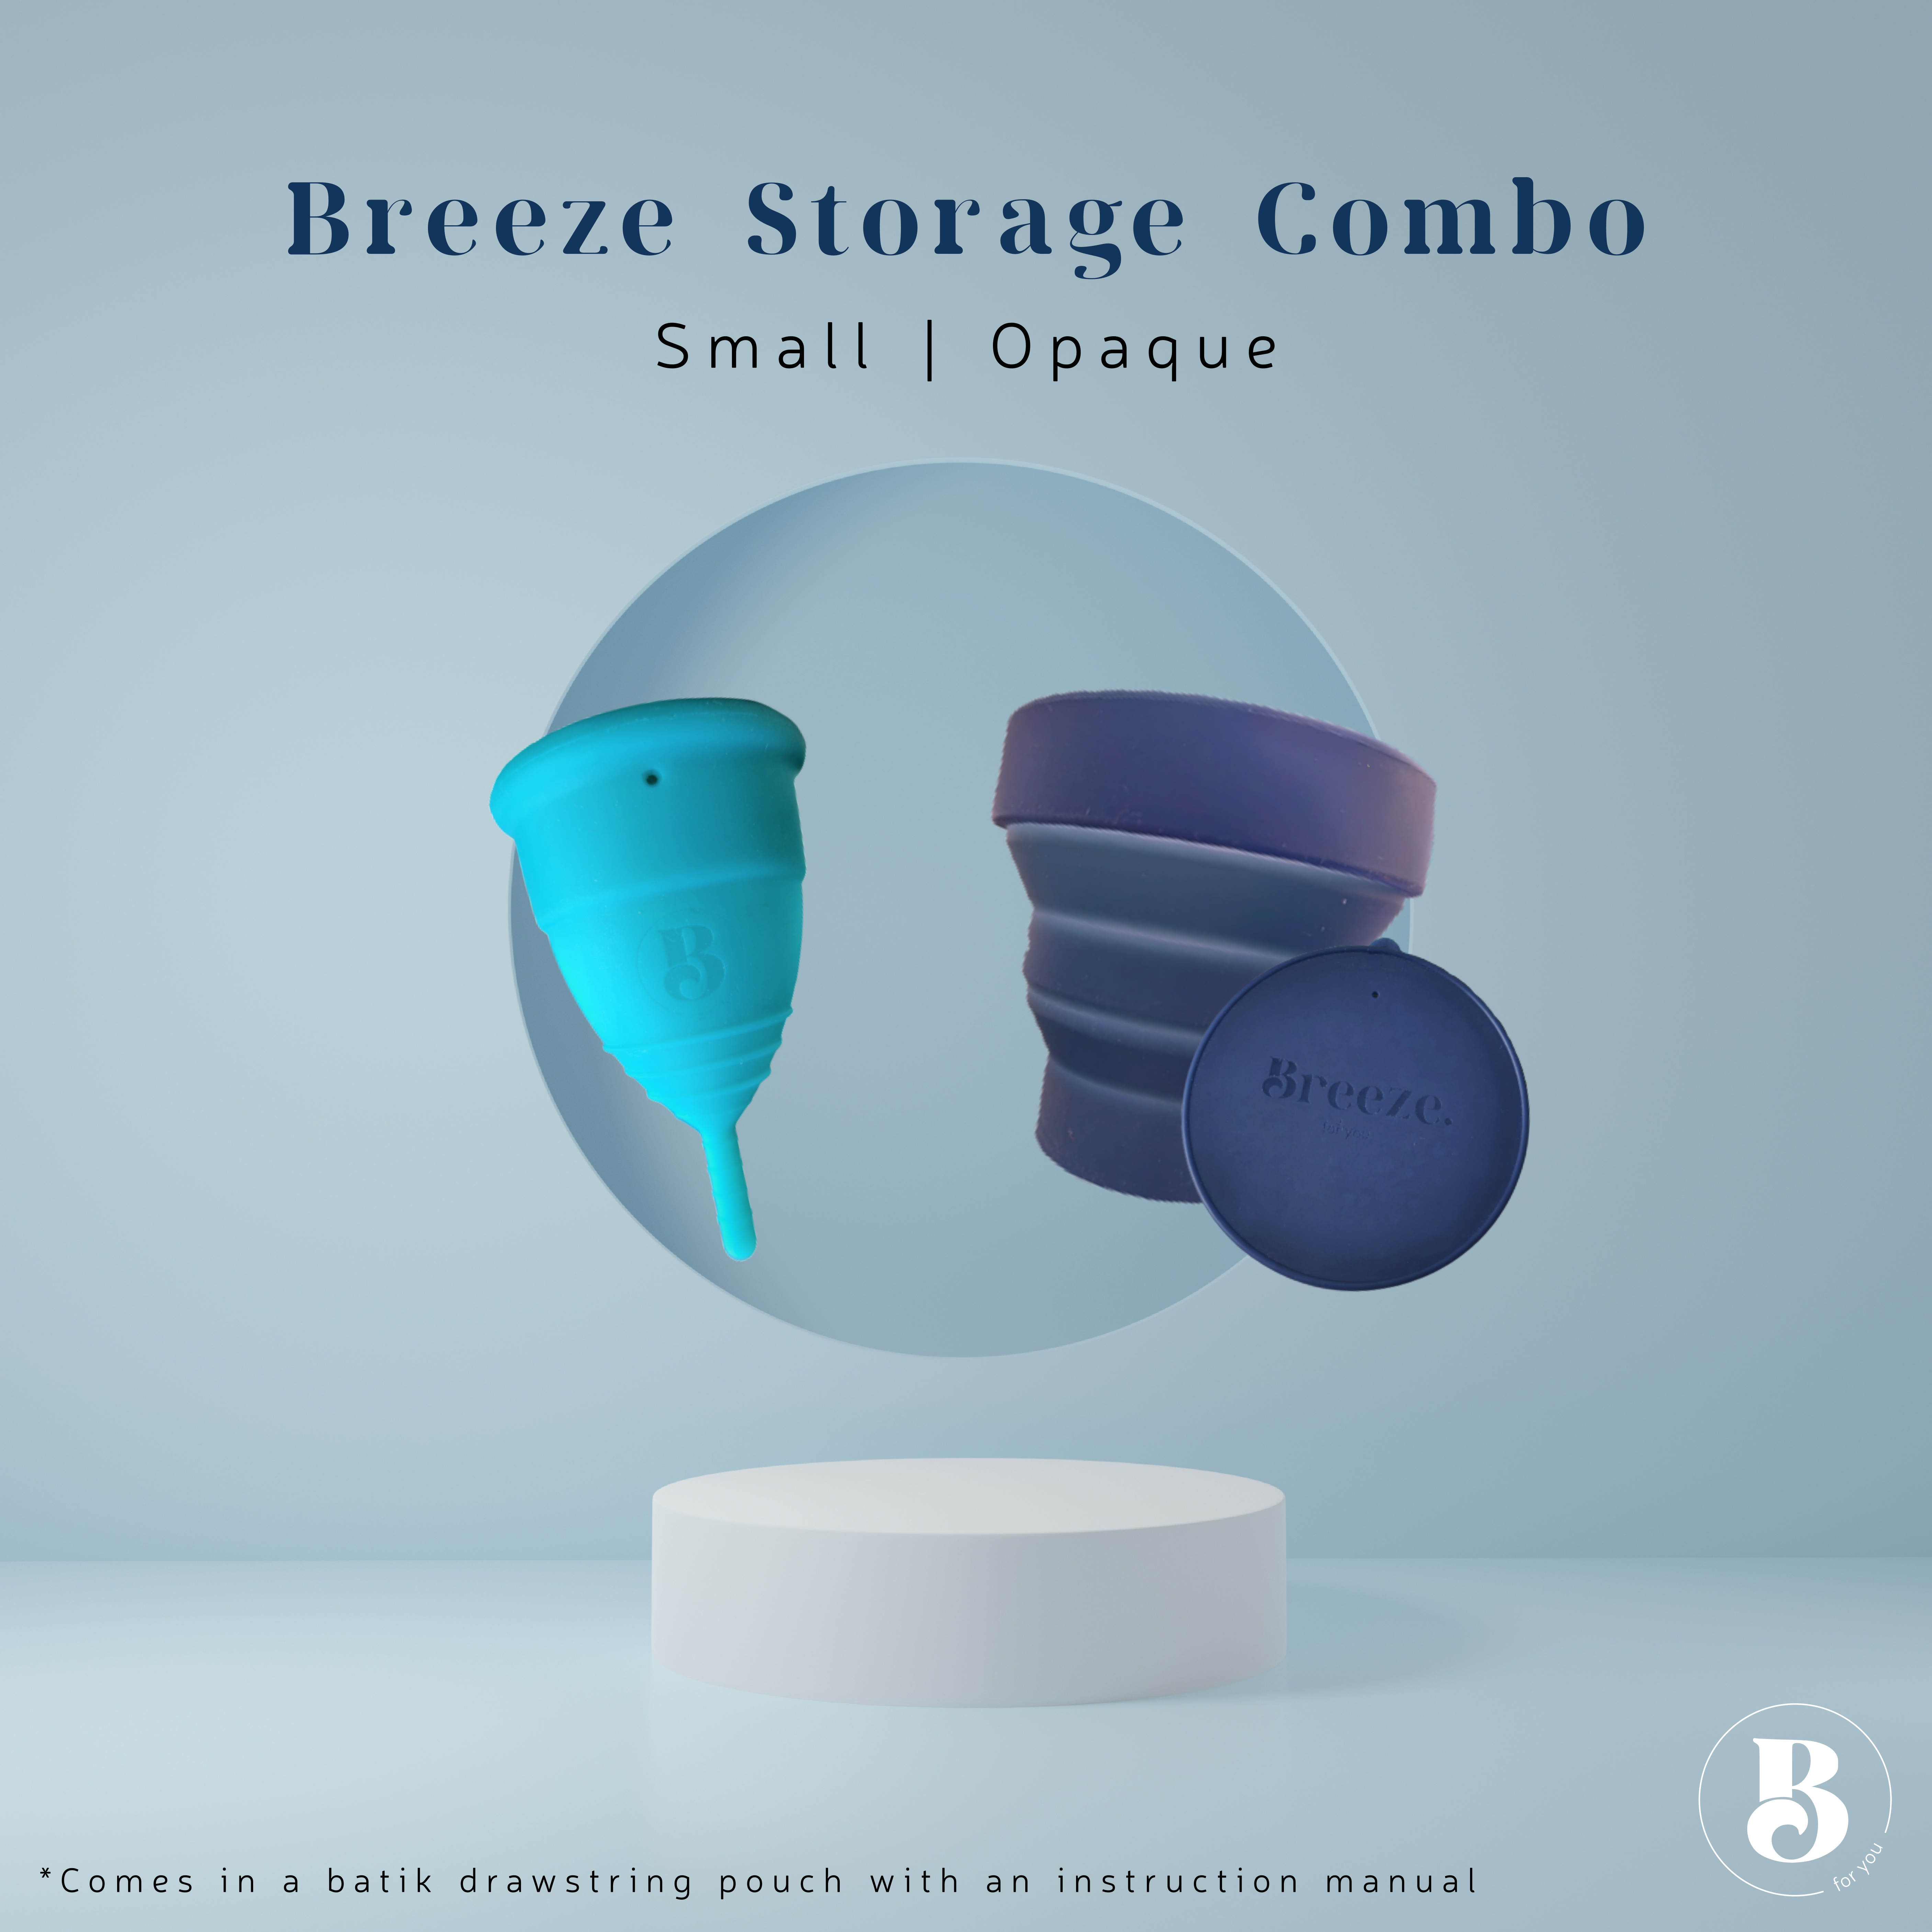 Breeze Storage Combo Small Opaque